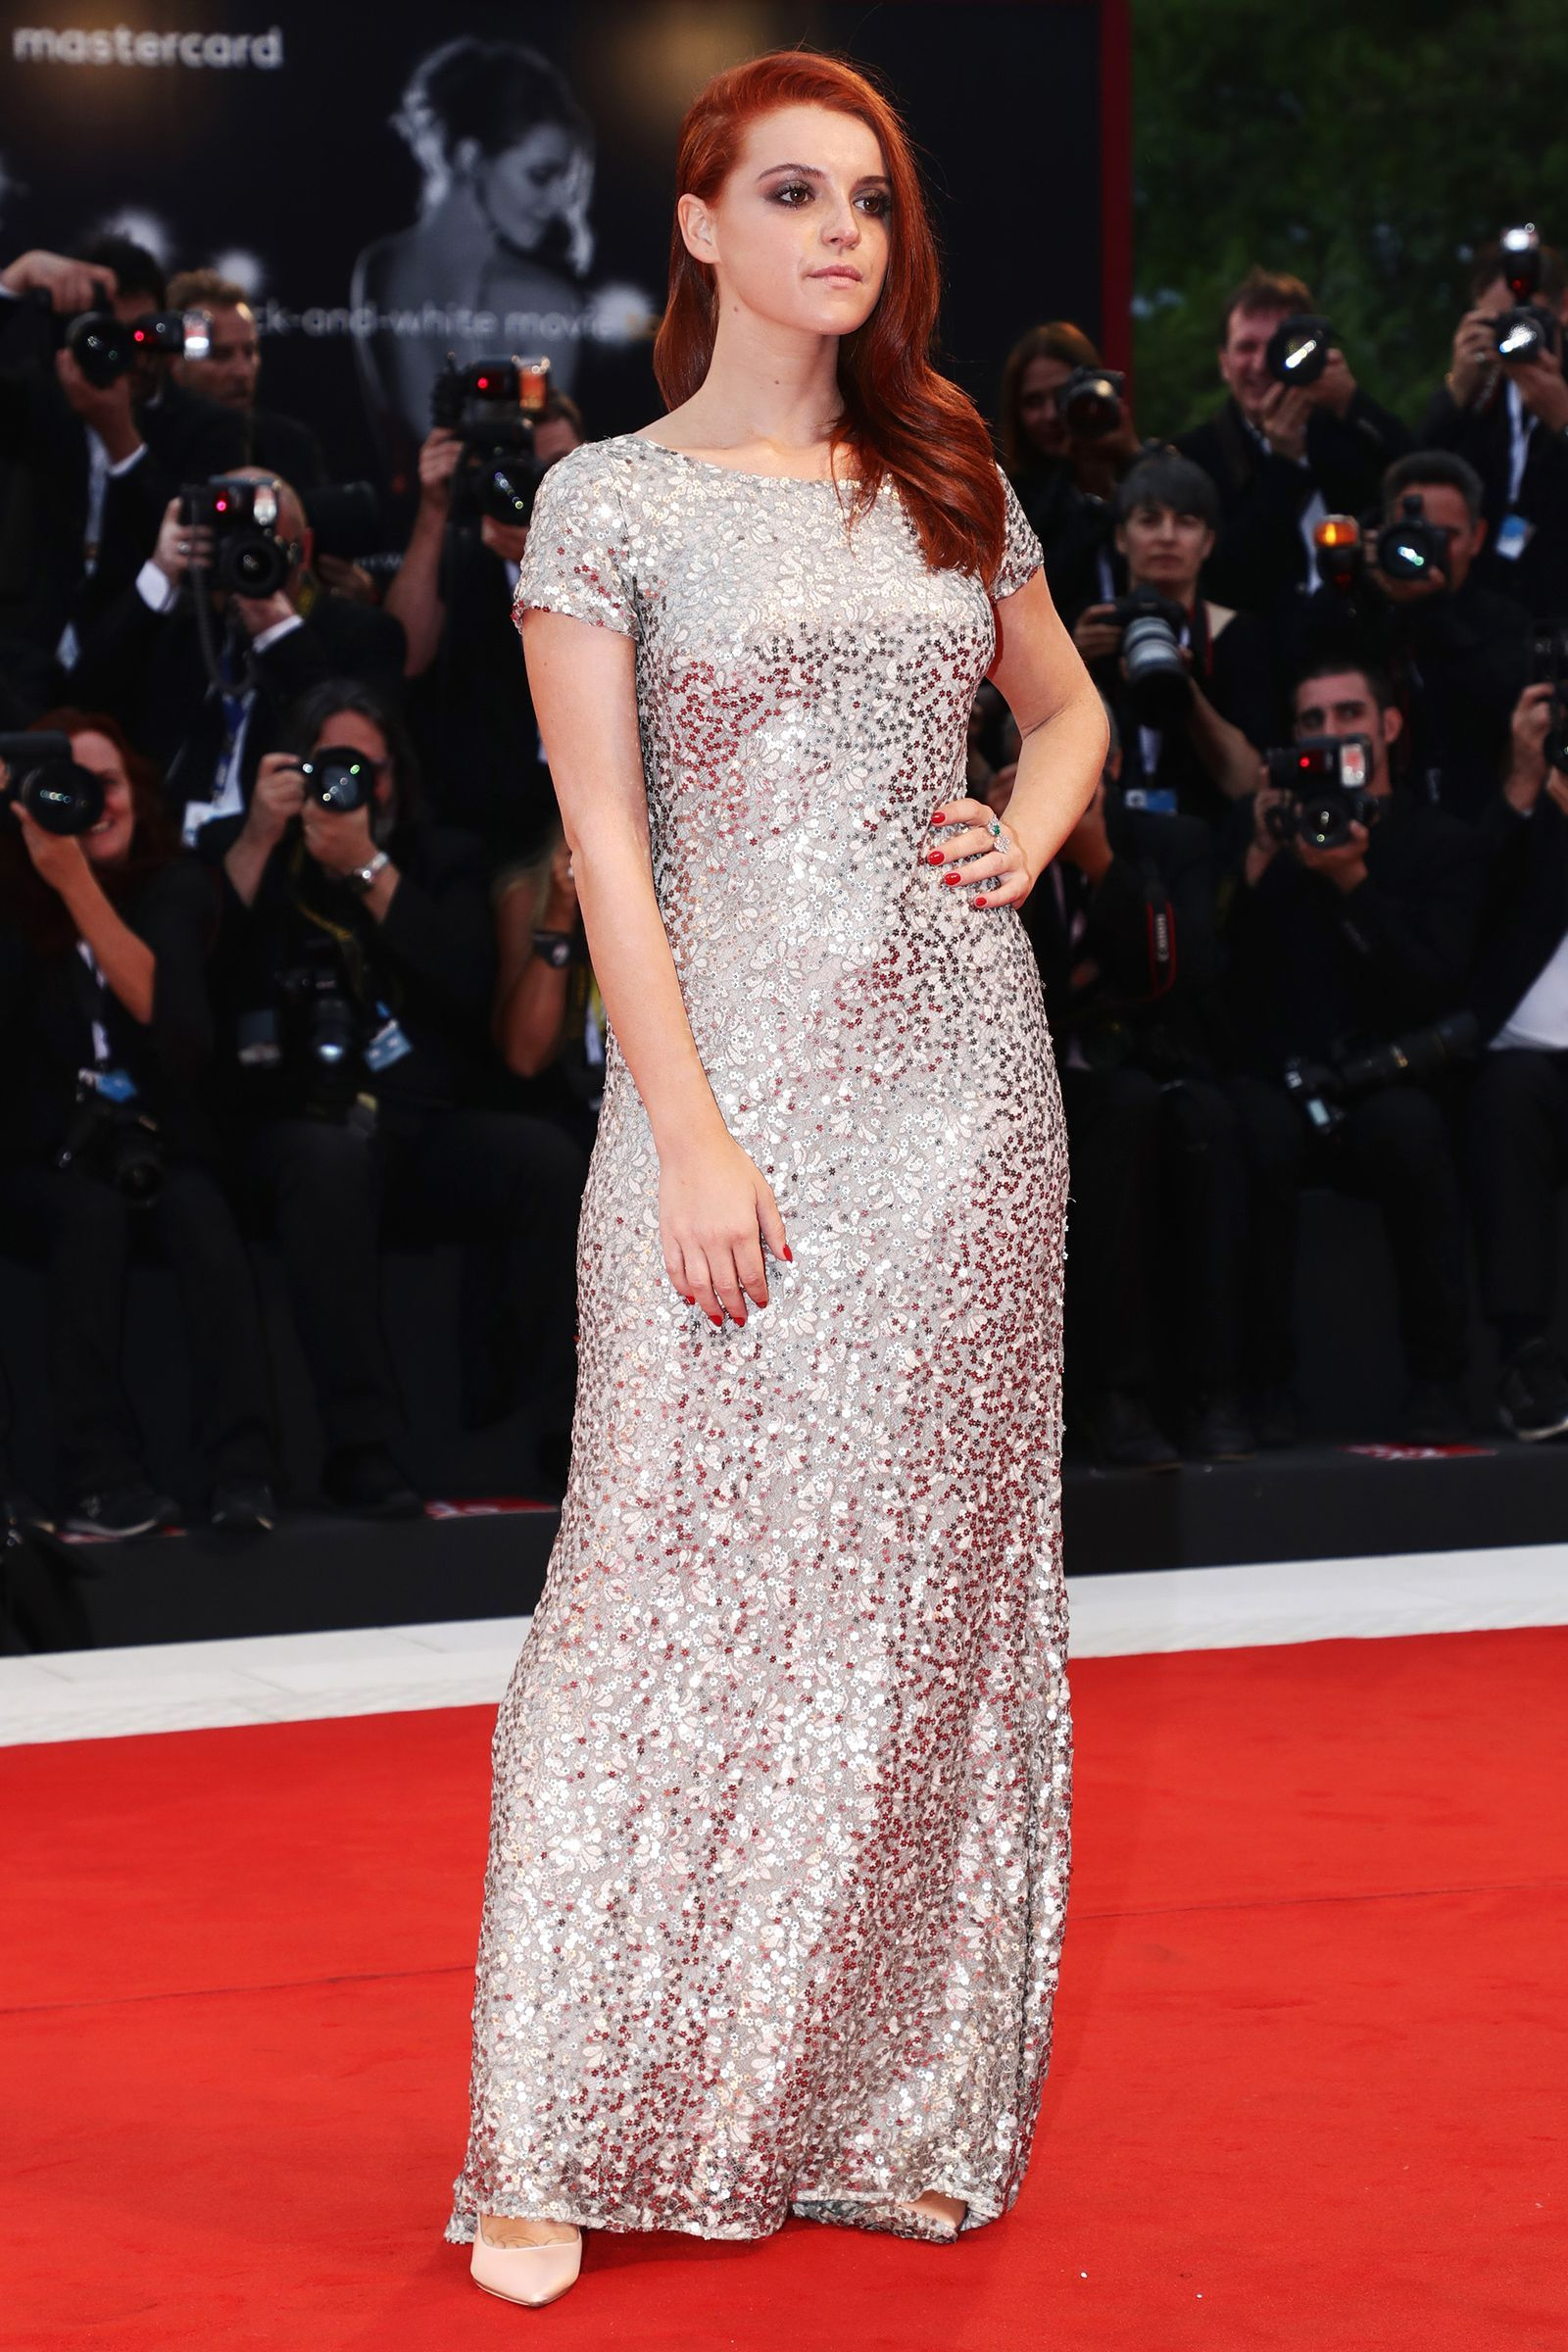 The Venice Film Festival Red Carpet Is Just As Good As Cannes Nice Dresses Red Carpet Dresses Dresses